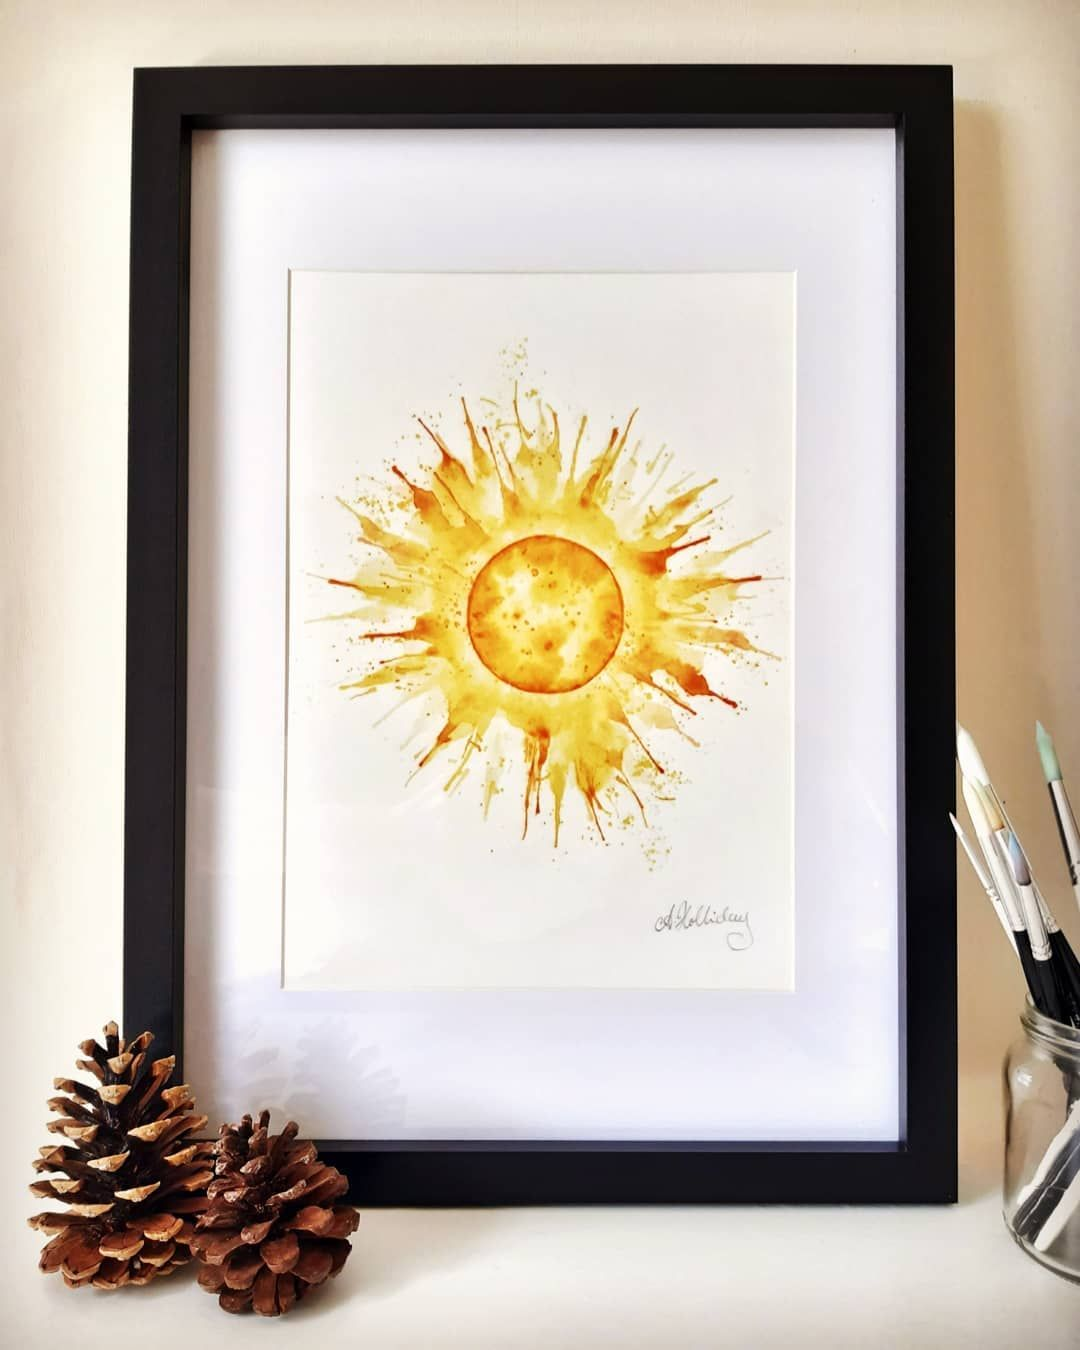 Its almost the Summer Solstice and longest day ☀️ I was asked to make my bursting sun / Summer Solstice design into a print, so here it is 💛  #summersolstice #midsummer #summer #longestday #sun #pagan #paganfestival #nature #sunburst #watercolour #watercoloursun #watercolourillustration #watercolourspace #celestial #planets #splash #etsy #etsyshop #shopsmall #standwithsmall #smallbusiness #gicleeprint #artprint #sunart #sunprint